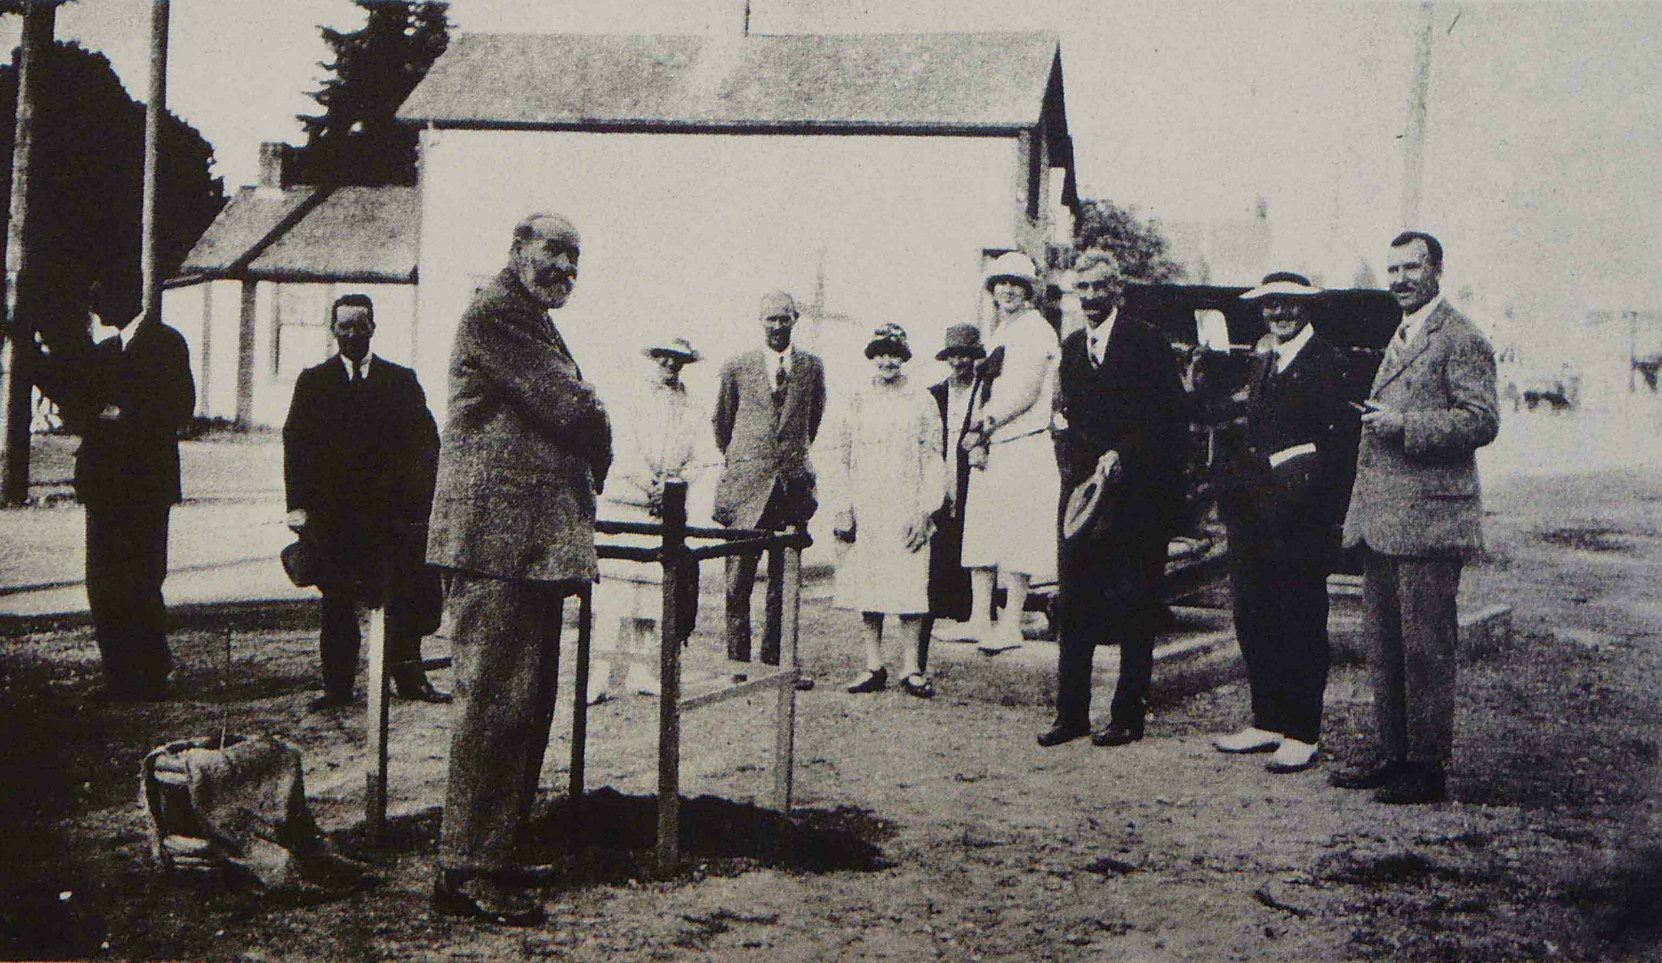 David Alexander planting the Confederation Tree, Government Street, Duncan, B.C. on 1 July 1927.